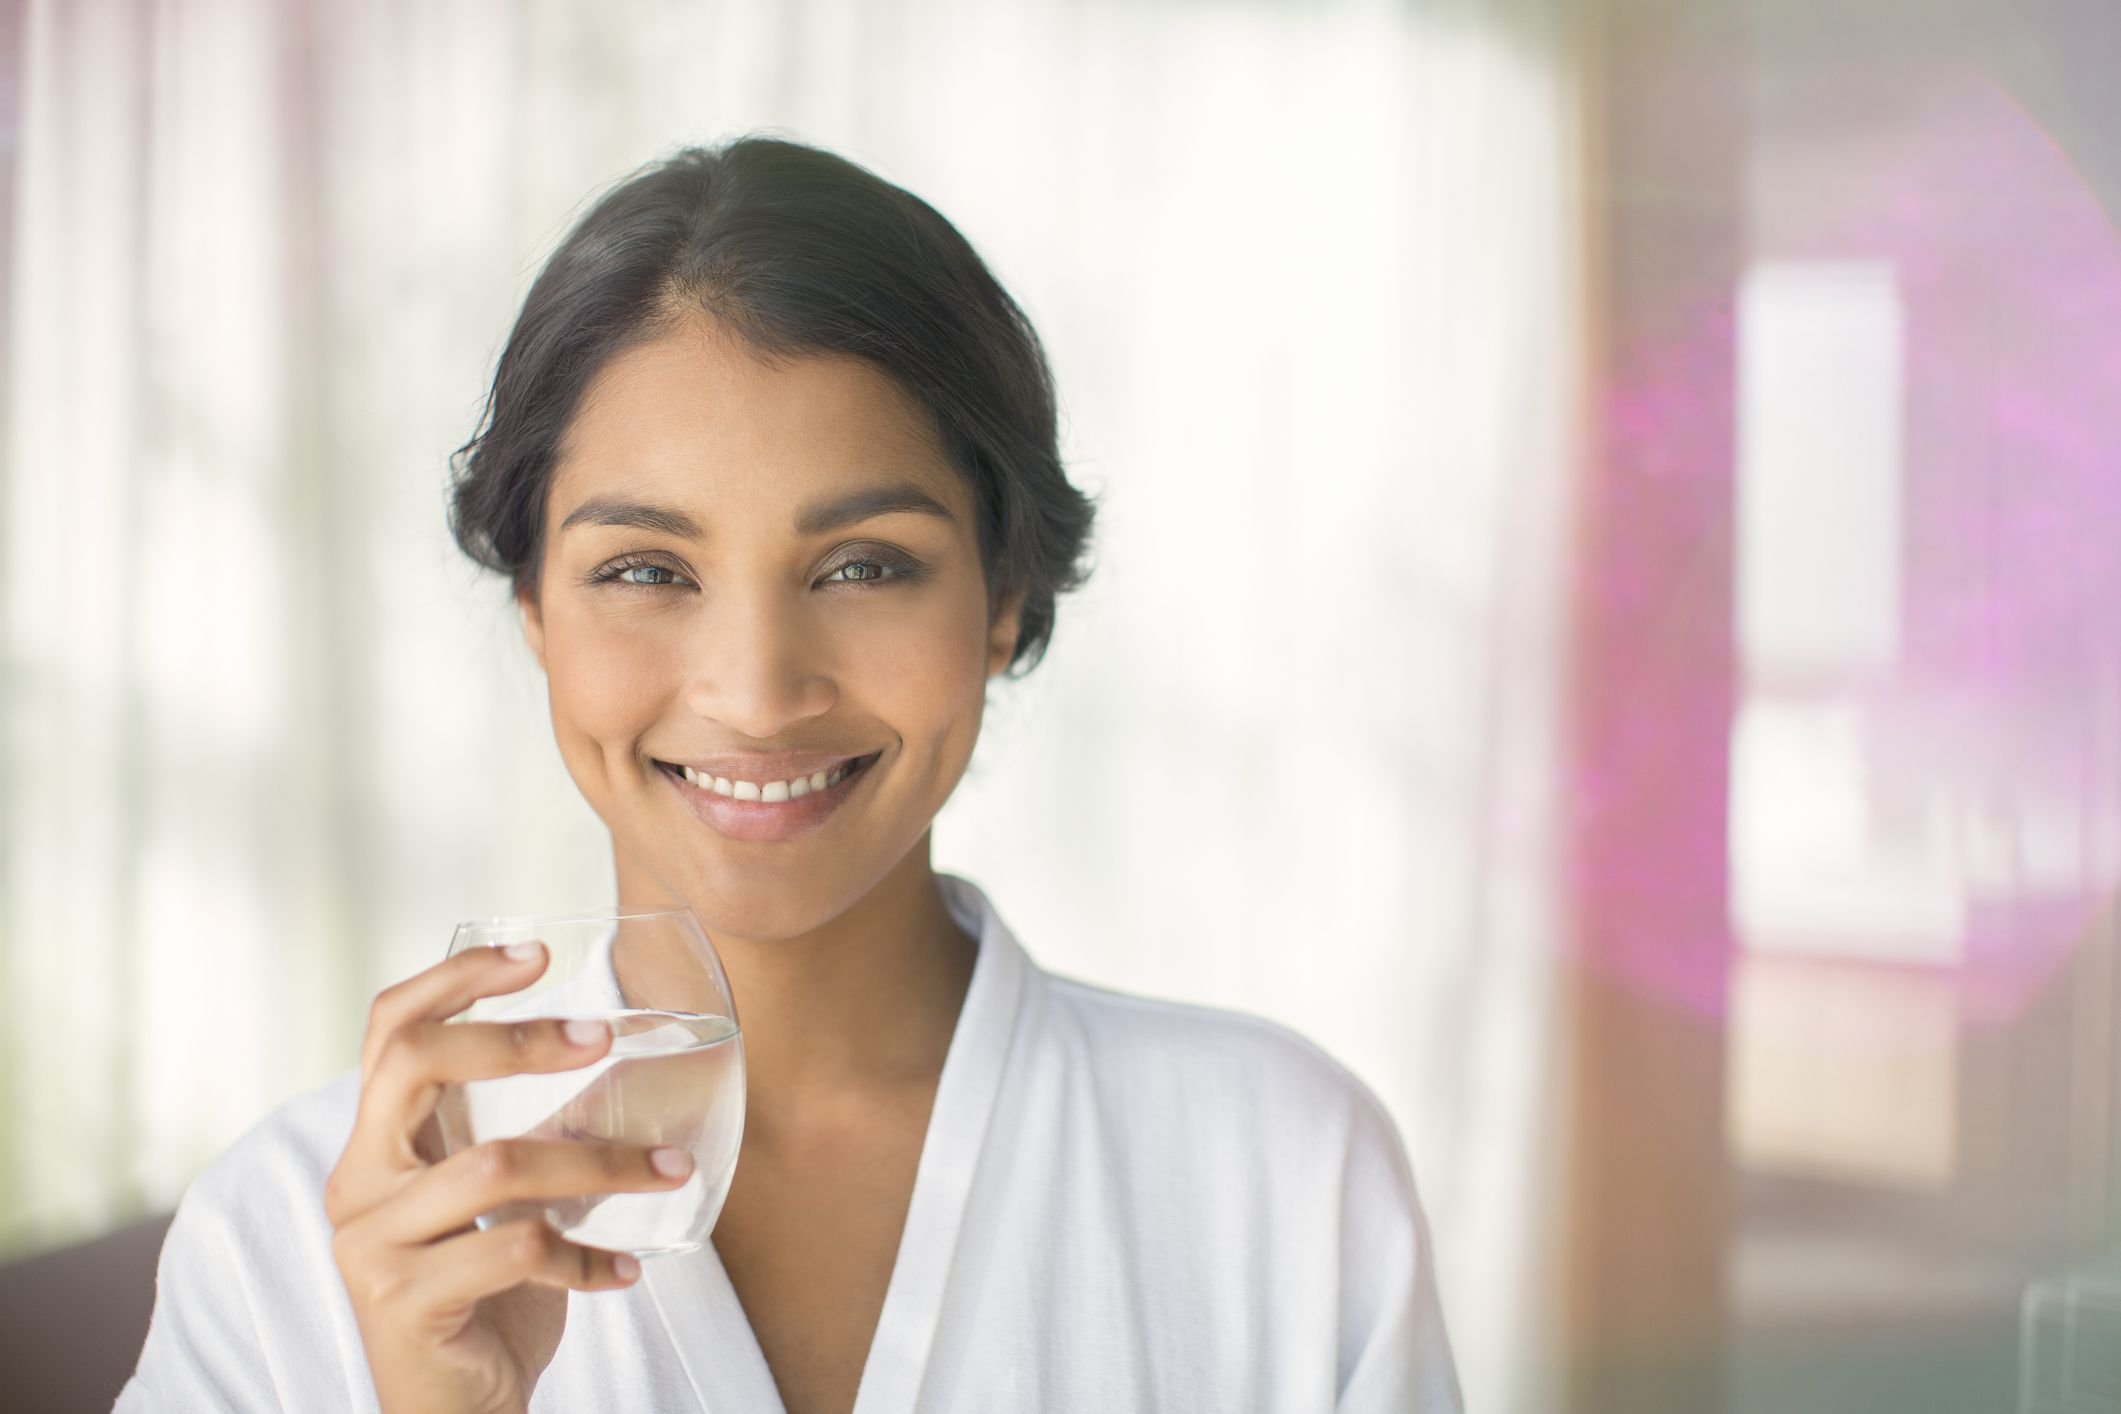 Why drinking water is good for your skin, according to a dermatologist